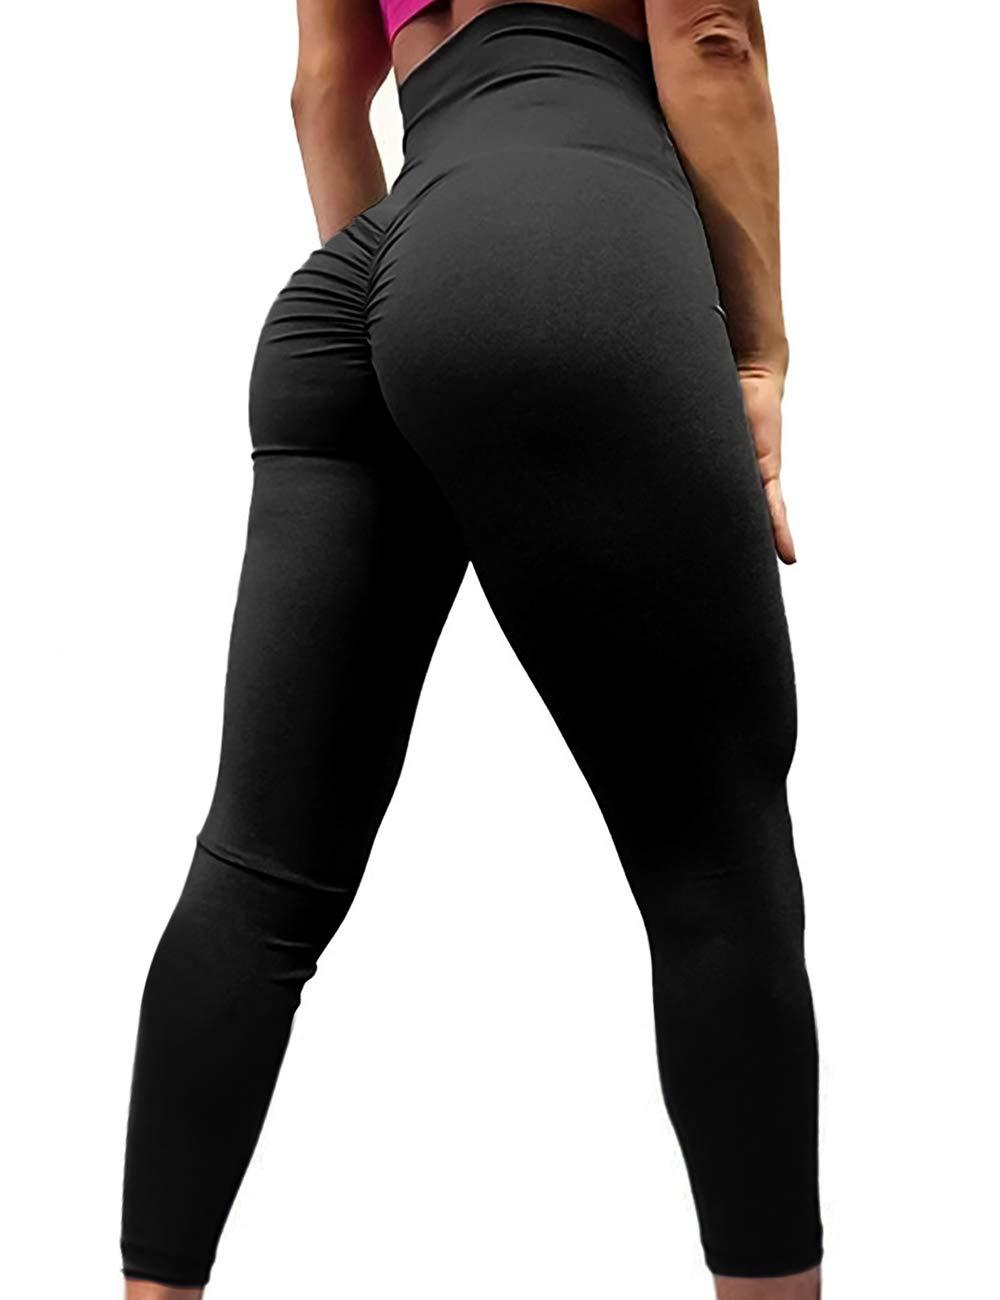 Fitness Form Fitting Yoga Lifting Pants-JustFittoo